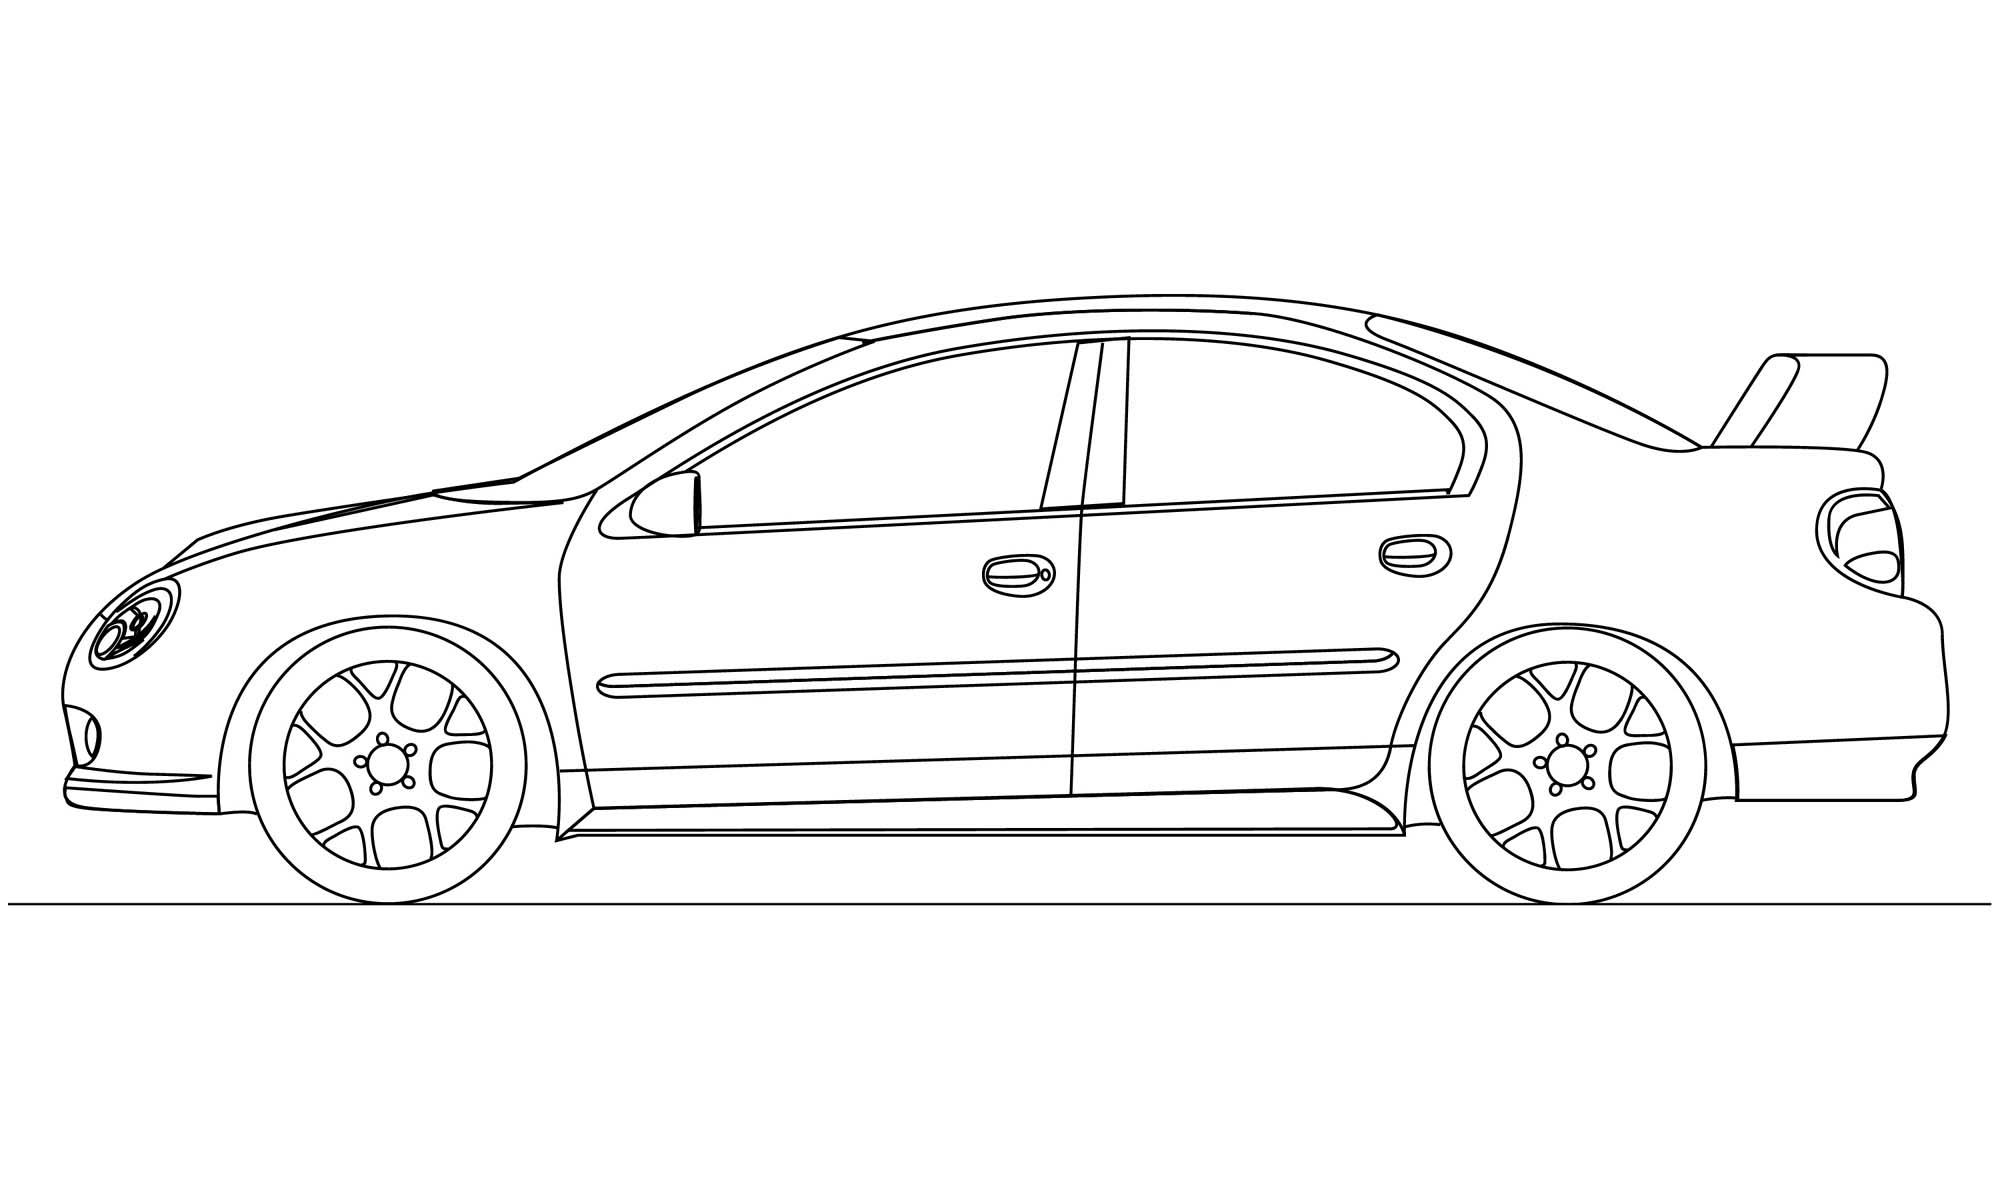 Srt 4 Line Drawing 68155 on dodge srt 4 horsepower